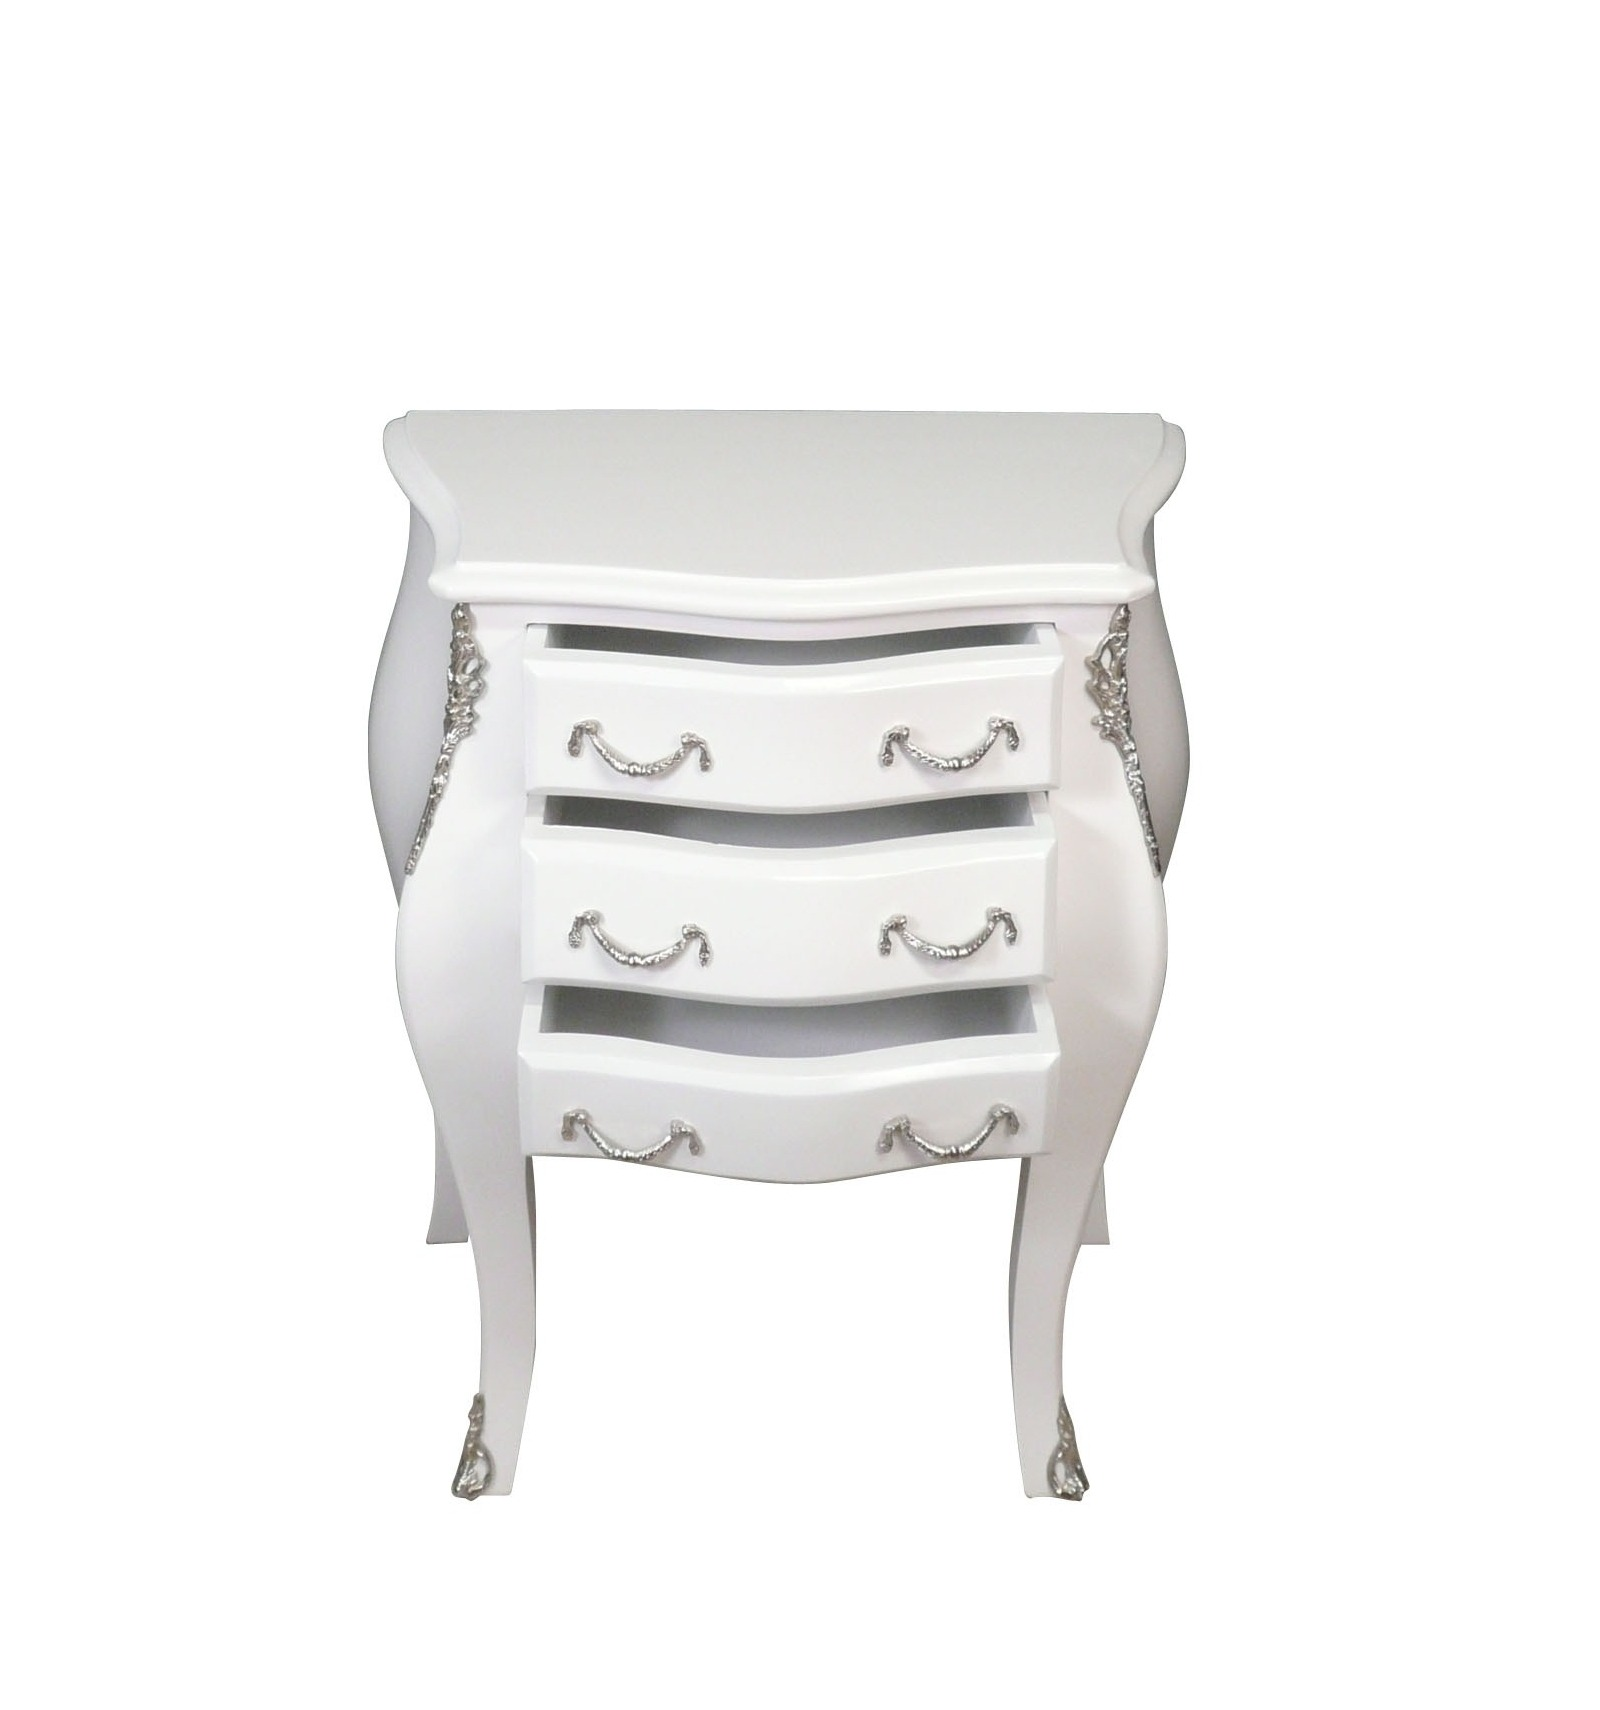 commode baroque blanche style louis xv commodes rococo. Black Bedroom Furniture Sets. Home Design Ideas